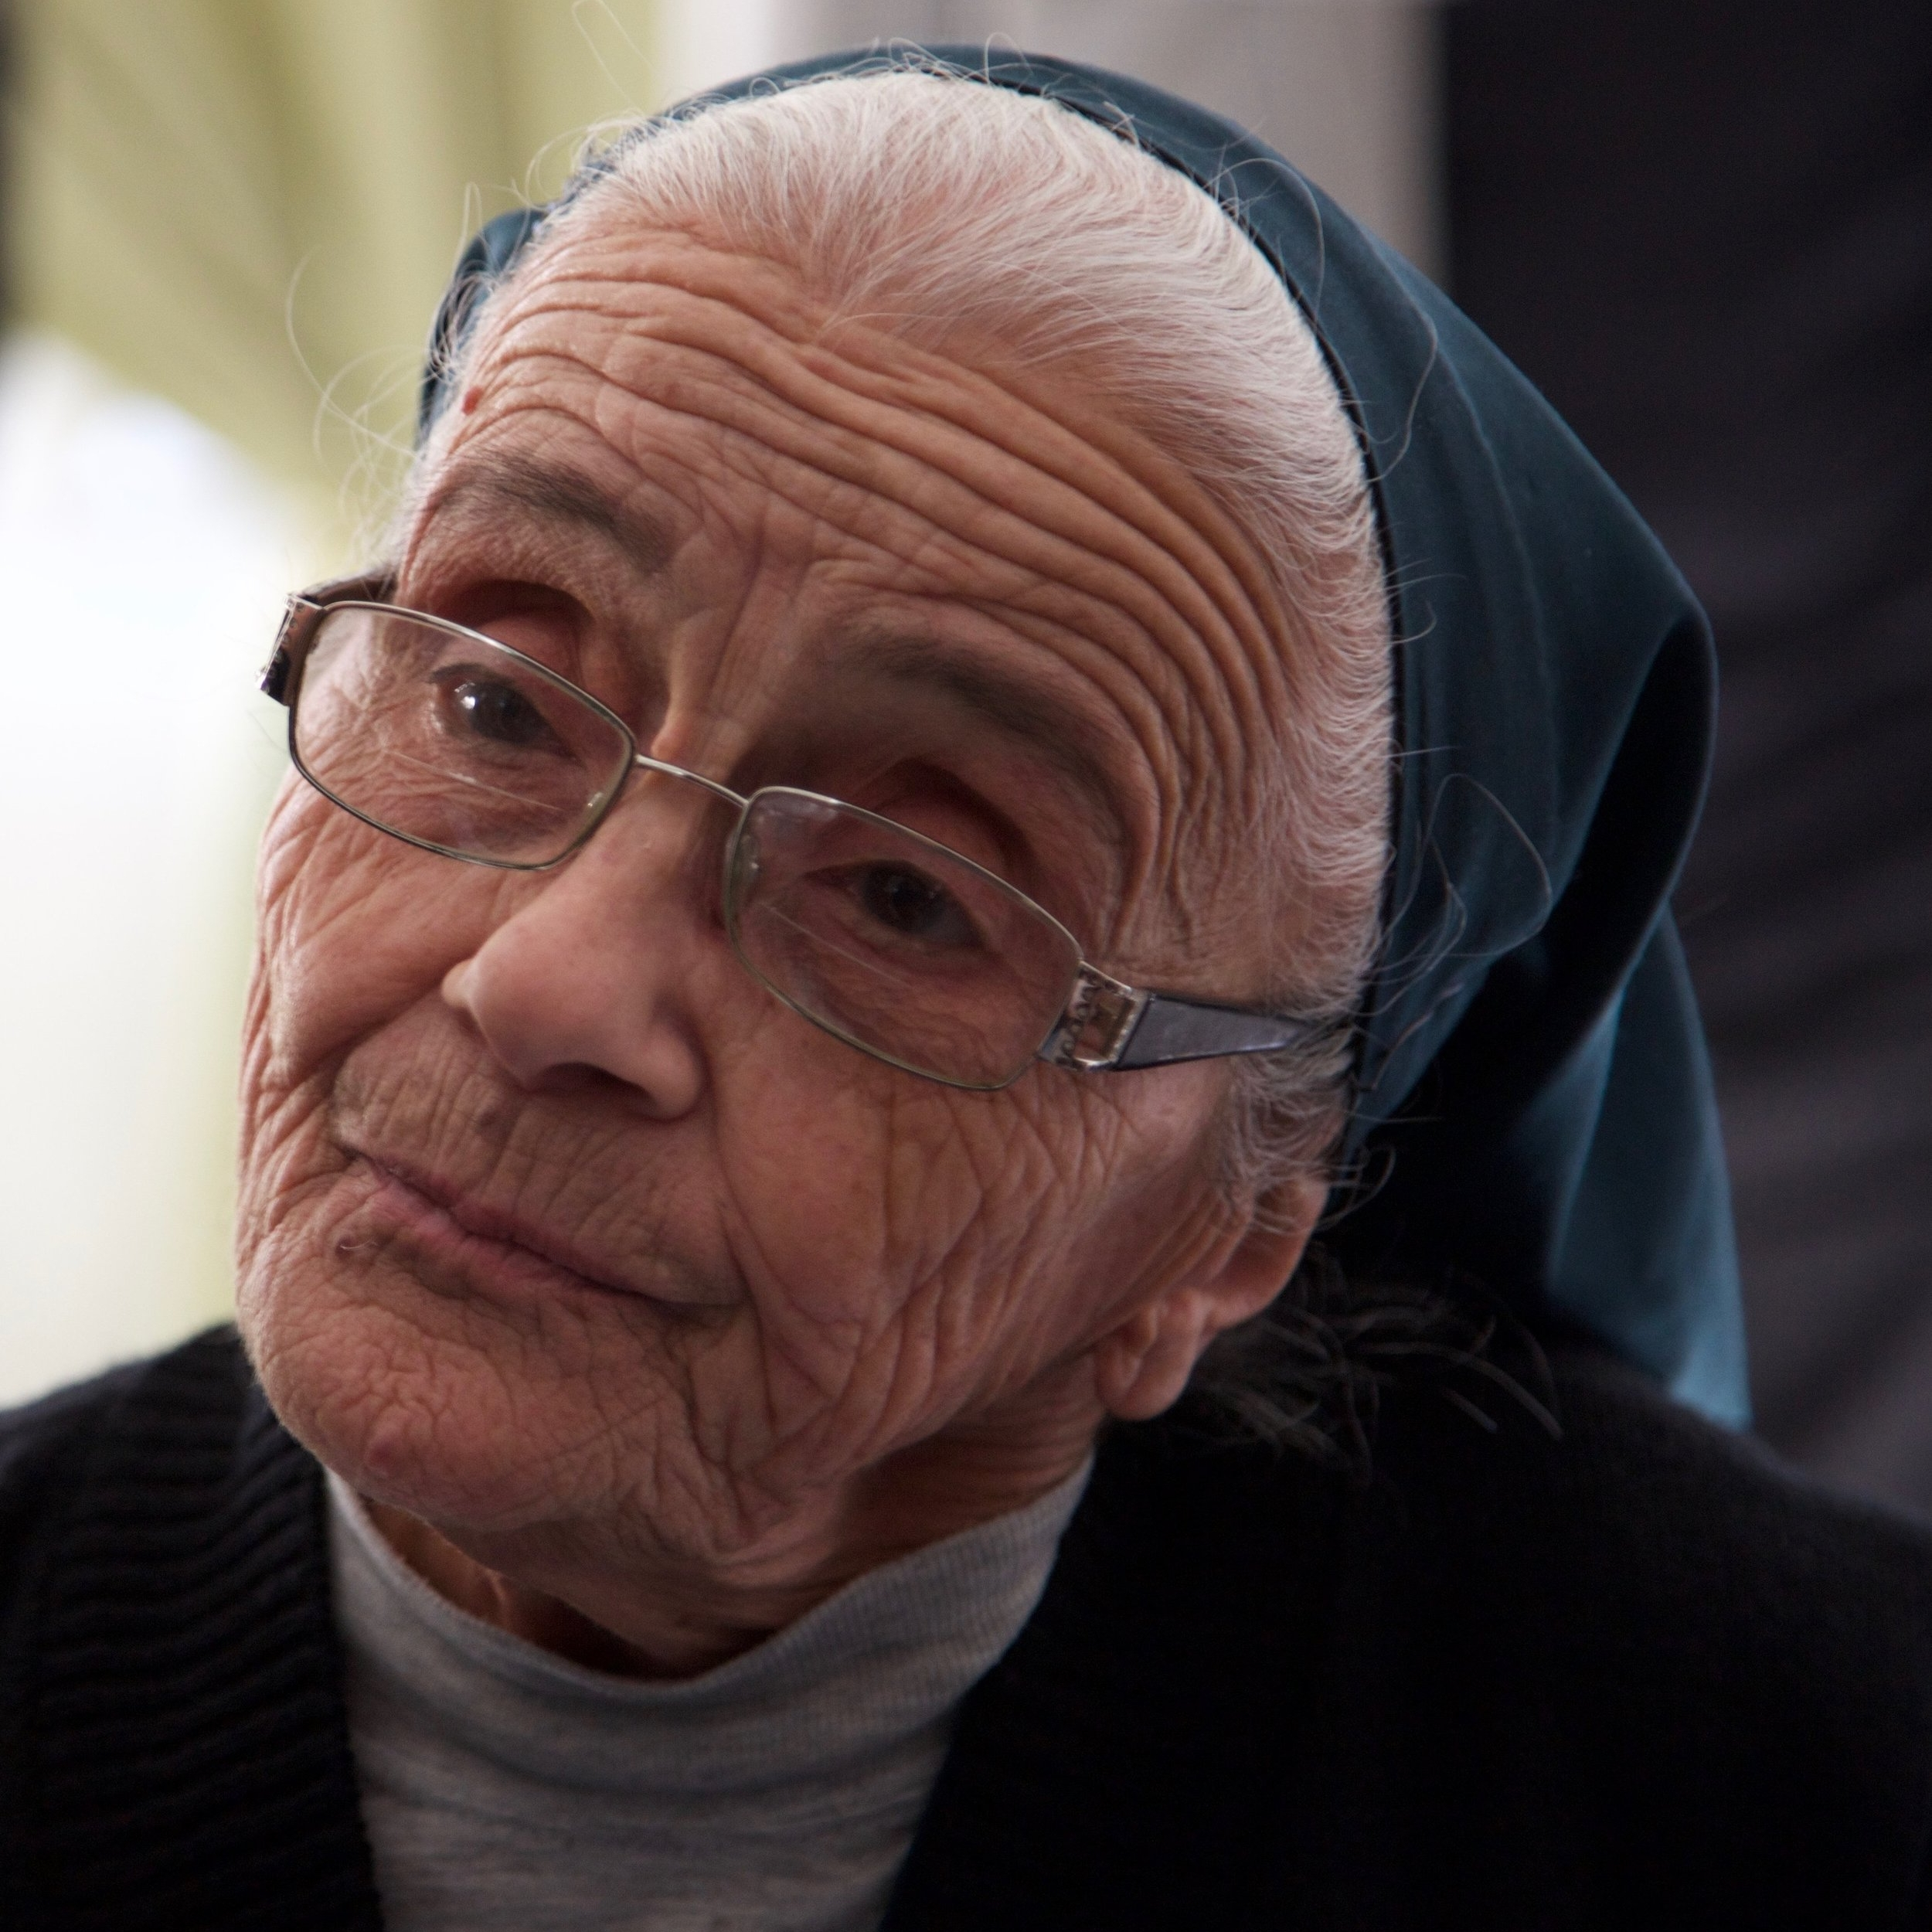 Your act of love provides heating fuel for the elderly in Homs.